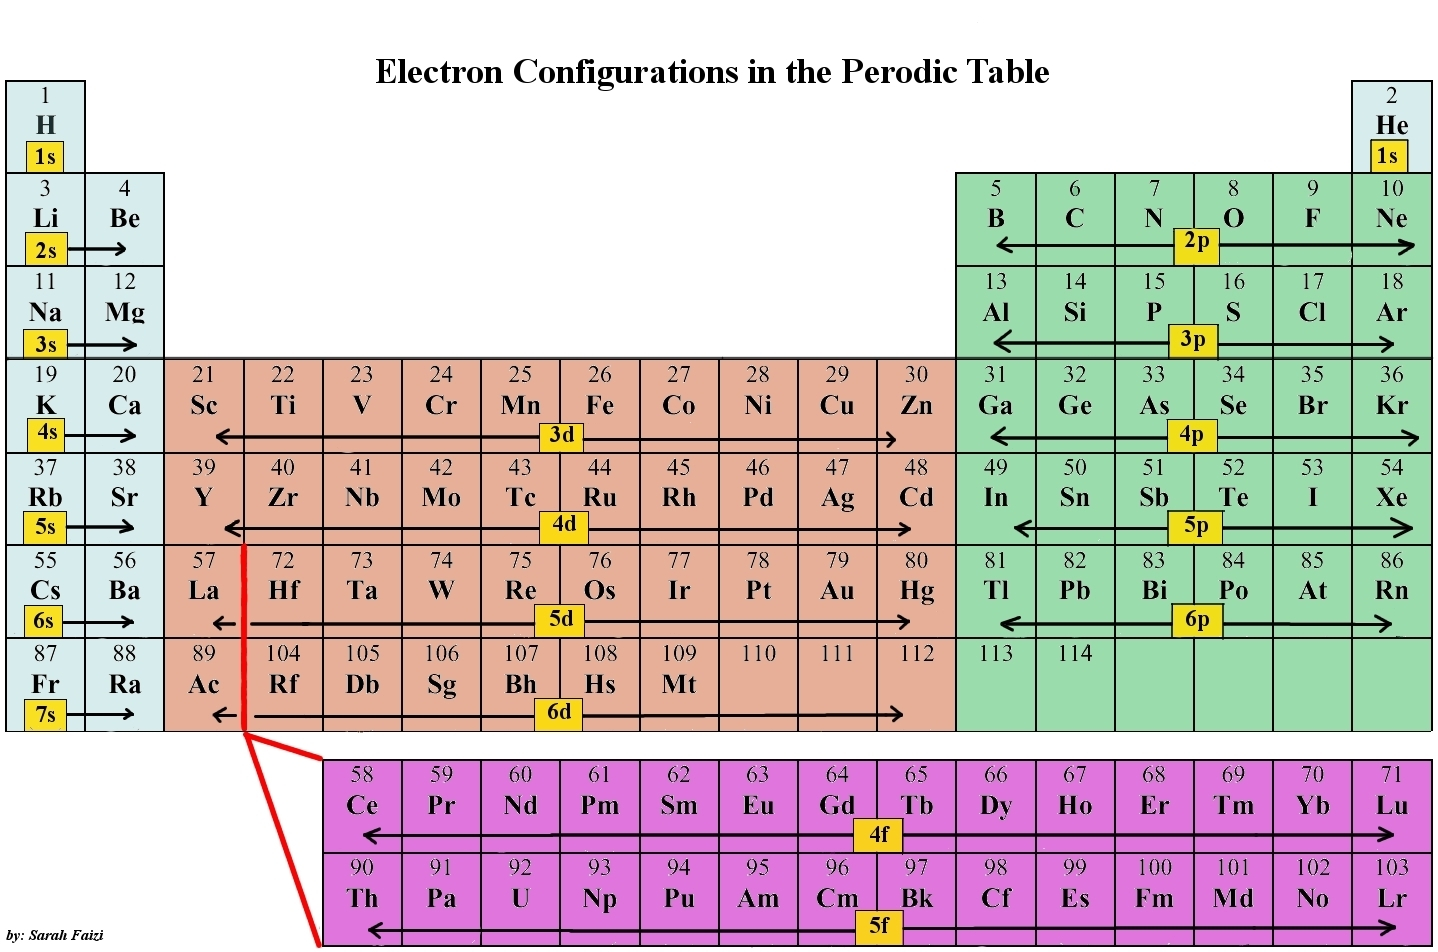 graphic regarding Periodic Table With Electron Configuration Printable named printable periodic desk with digital configuration